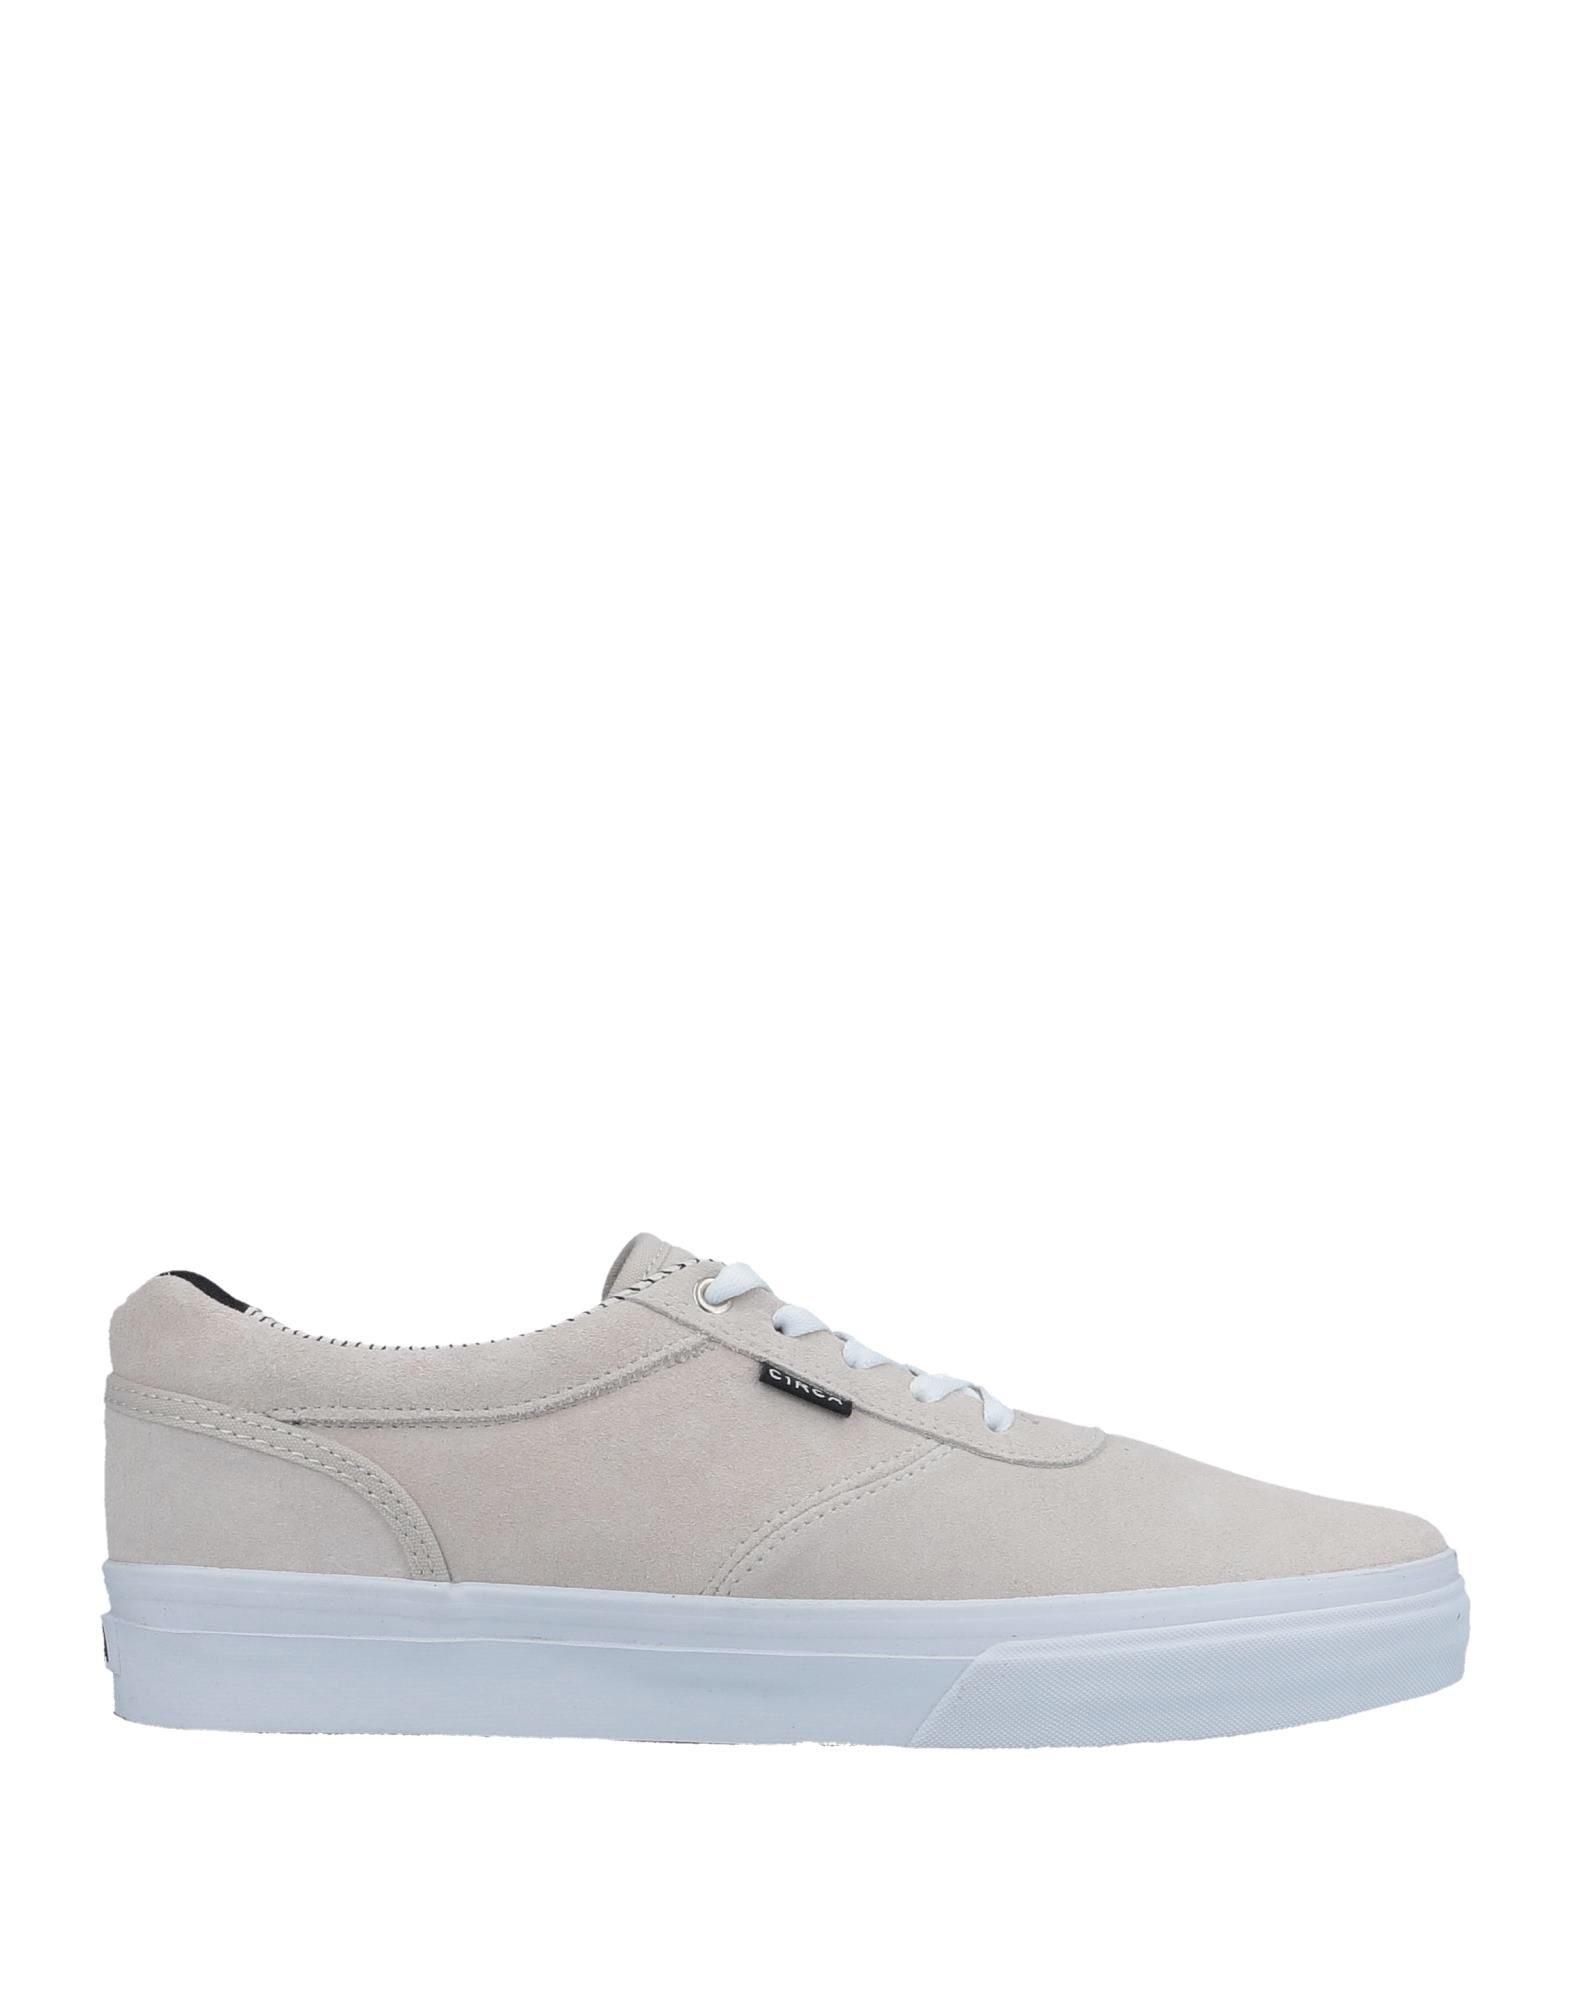 Baskets C1rca Homme - Baskets C1rca  Beige Chaussures casual sauvages